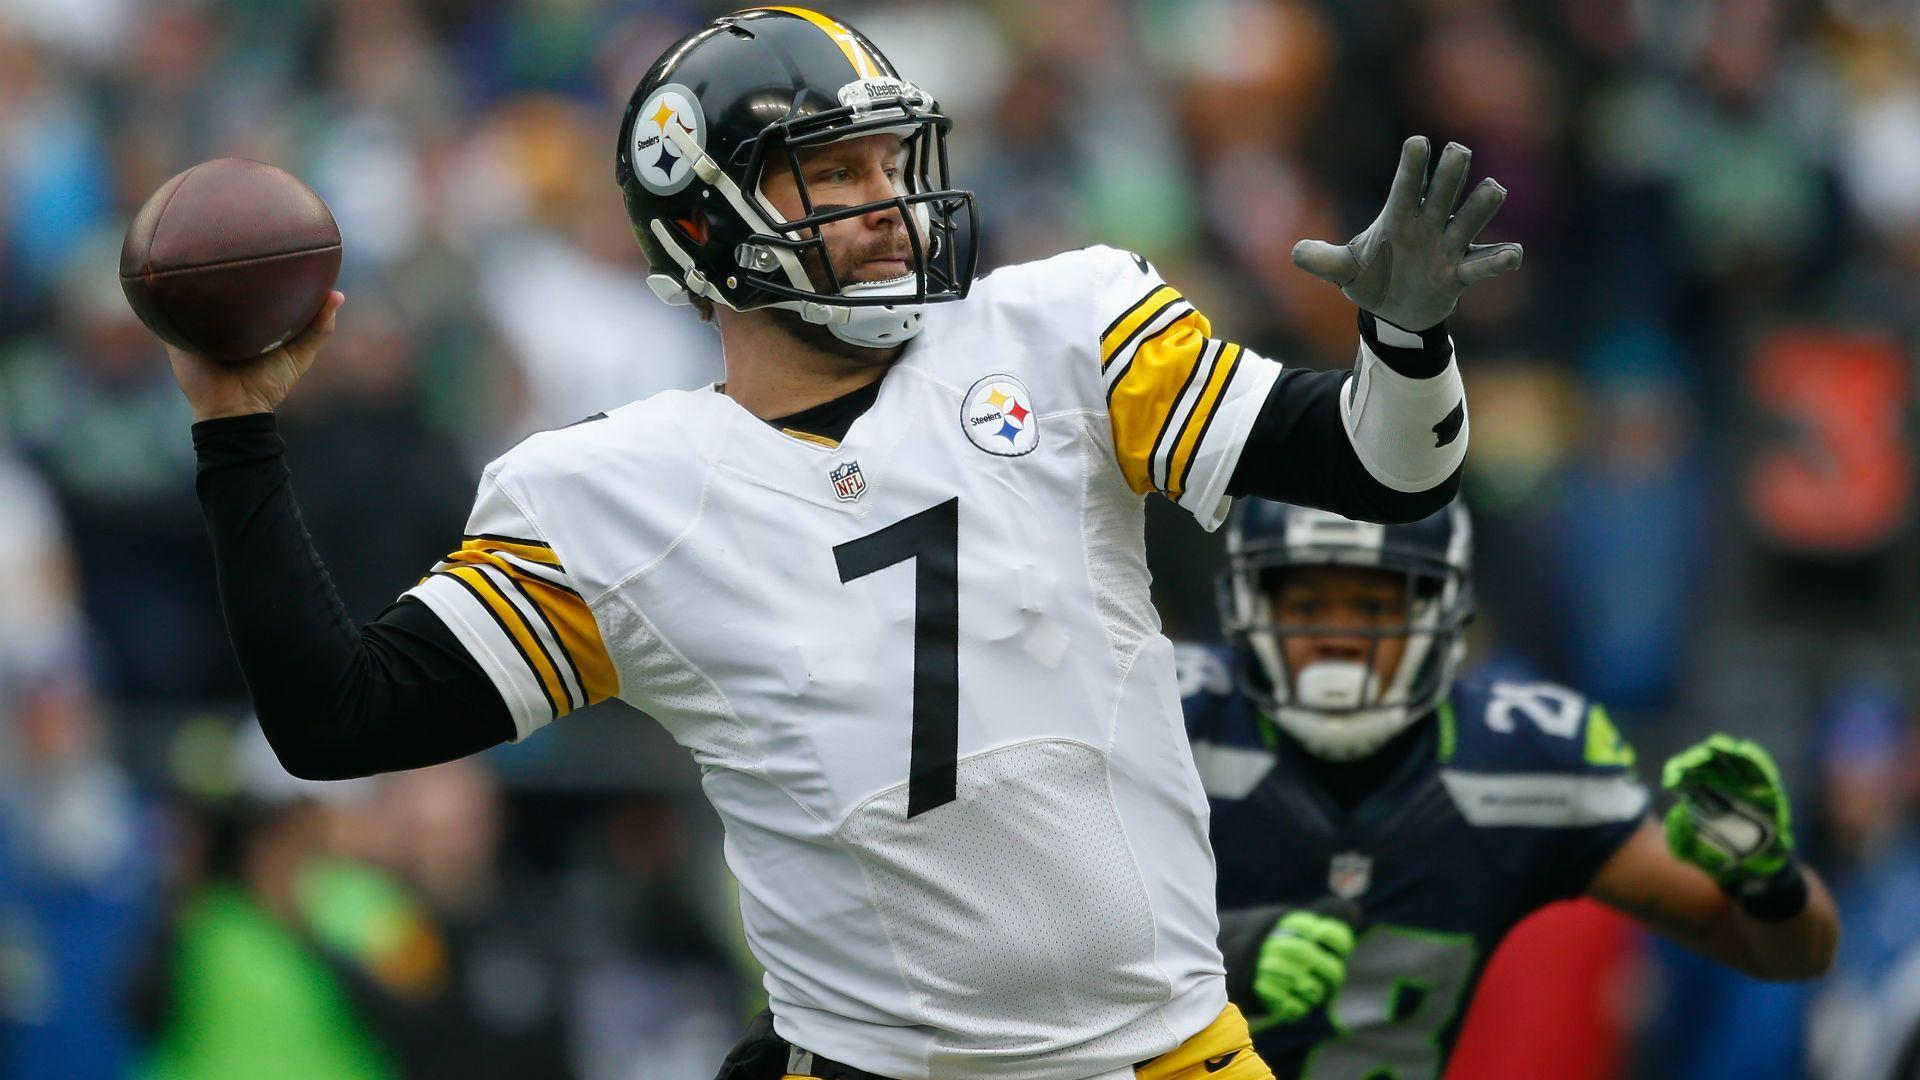 Ben Roethlisberger: Coming out of game 'doesn't make you less of a